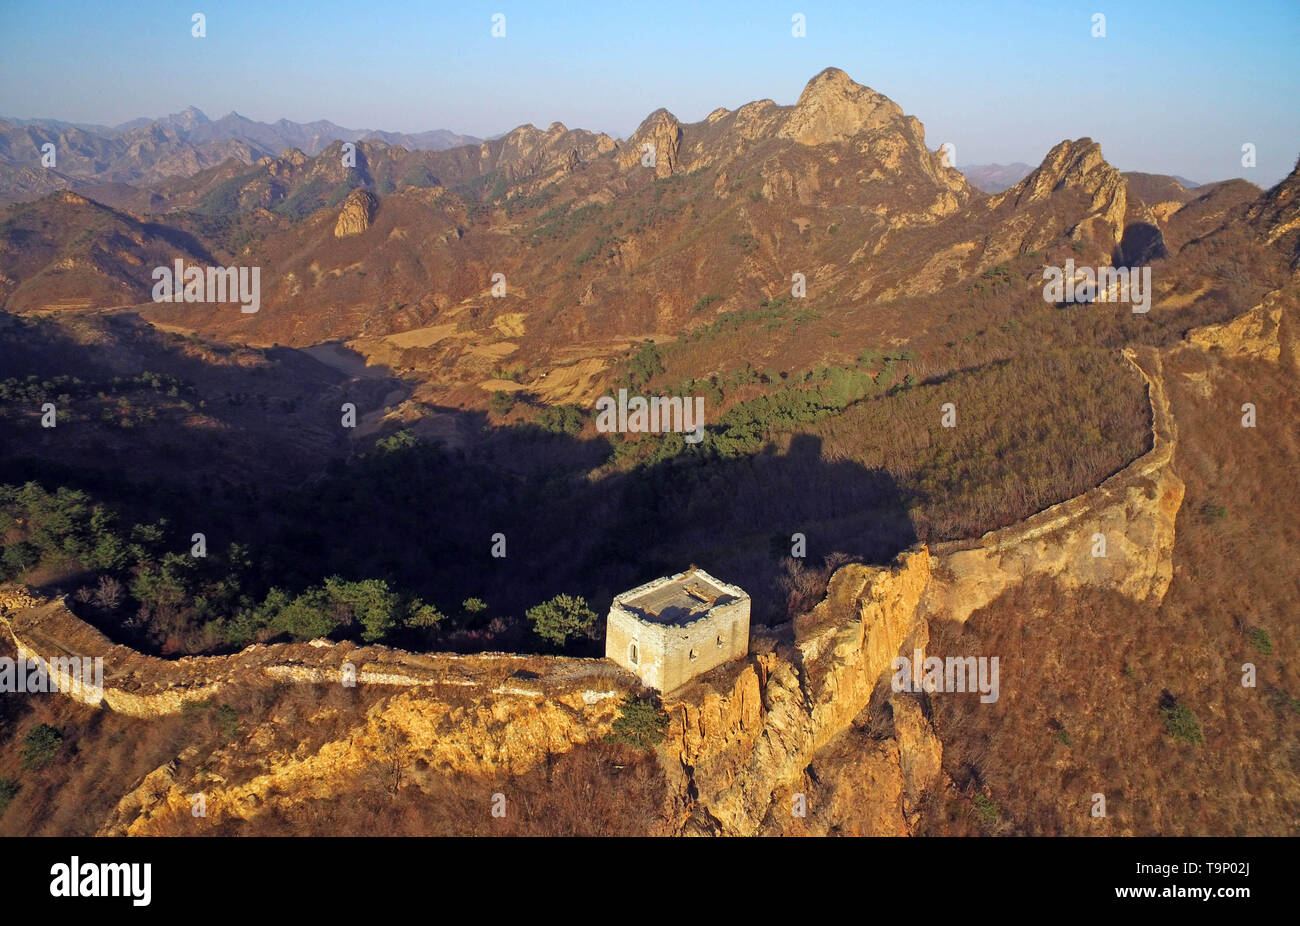 (190520) -- BEIJING, May 20, 2019 (Xinhua) -- Aerial photo taken on April 15, 2018 shows a section of the Great Wall in Suizhong County of Huludao, northeast China's Liaoning Province. Liaoning Province is located in the southern part of Northeast China, with the Bohai Sea and the Yellow Sea lying to its south. Over the years, the provincial government has prioritized ecological development and set environmental improvement at the core of its agenda. The province's ecological conditions have been improving thanks to systematic conservation of the natural environment, overall management of the  - Stock Image